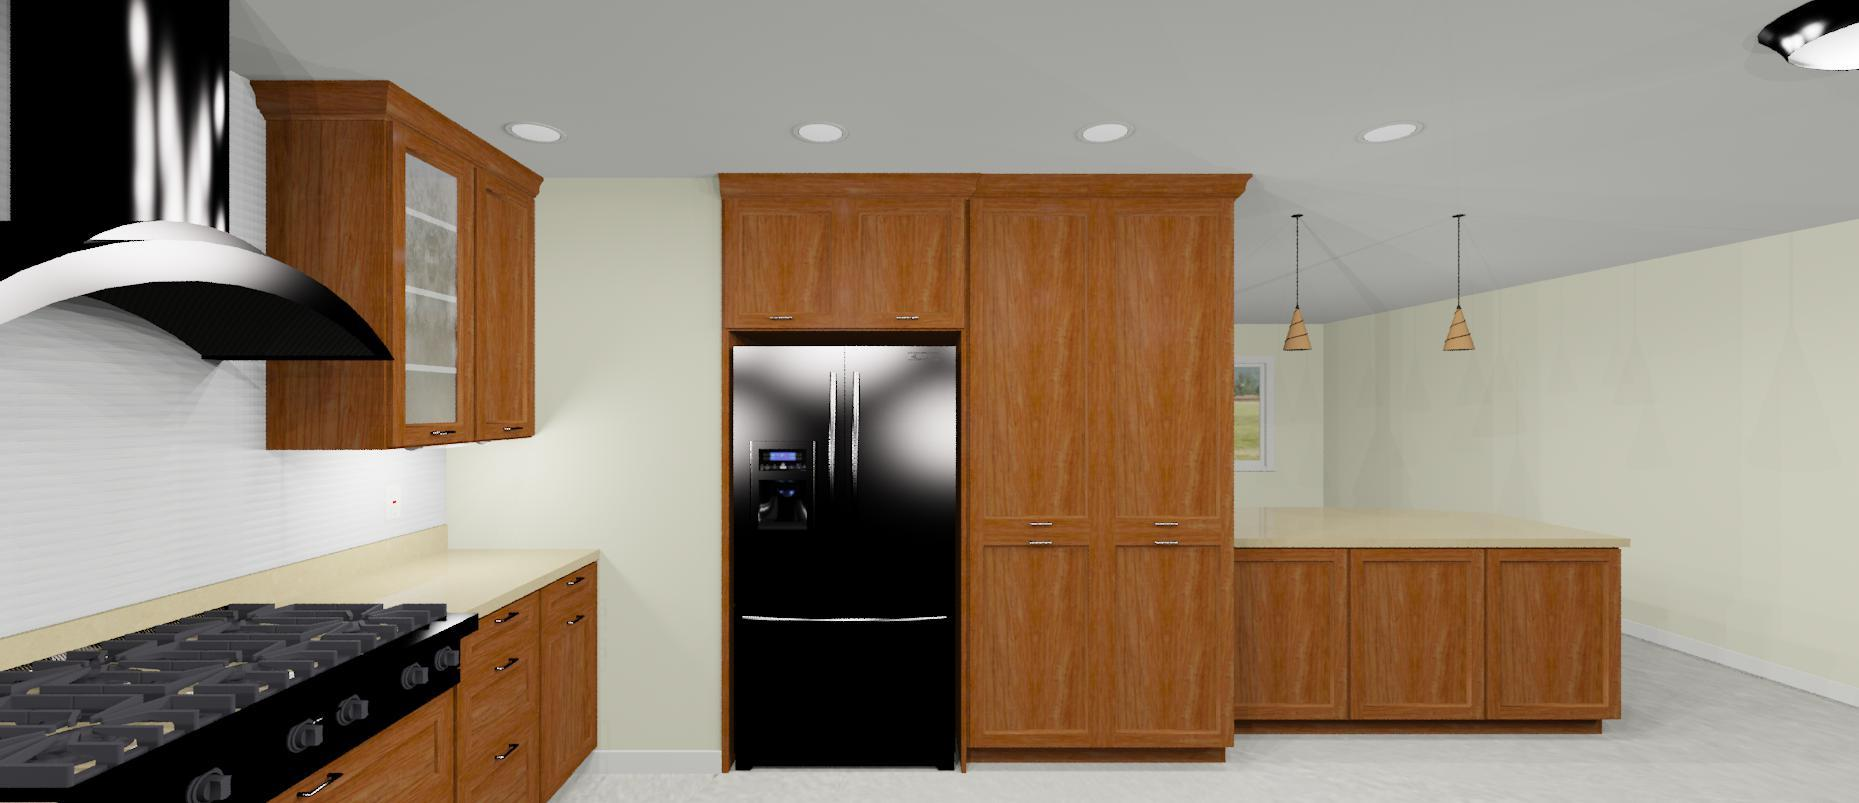 3d design of kitchen